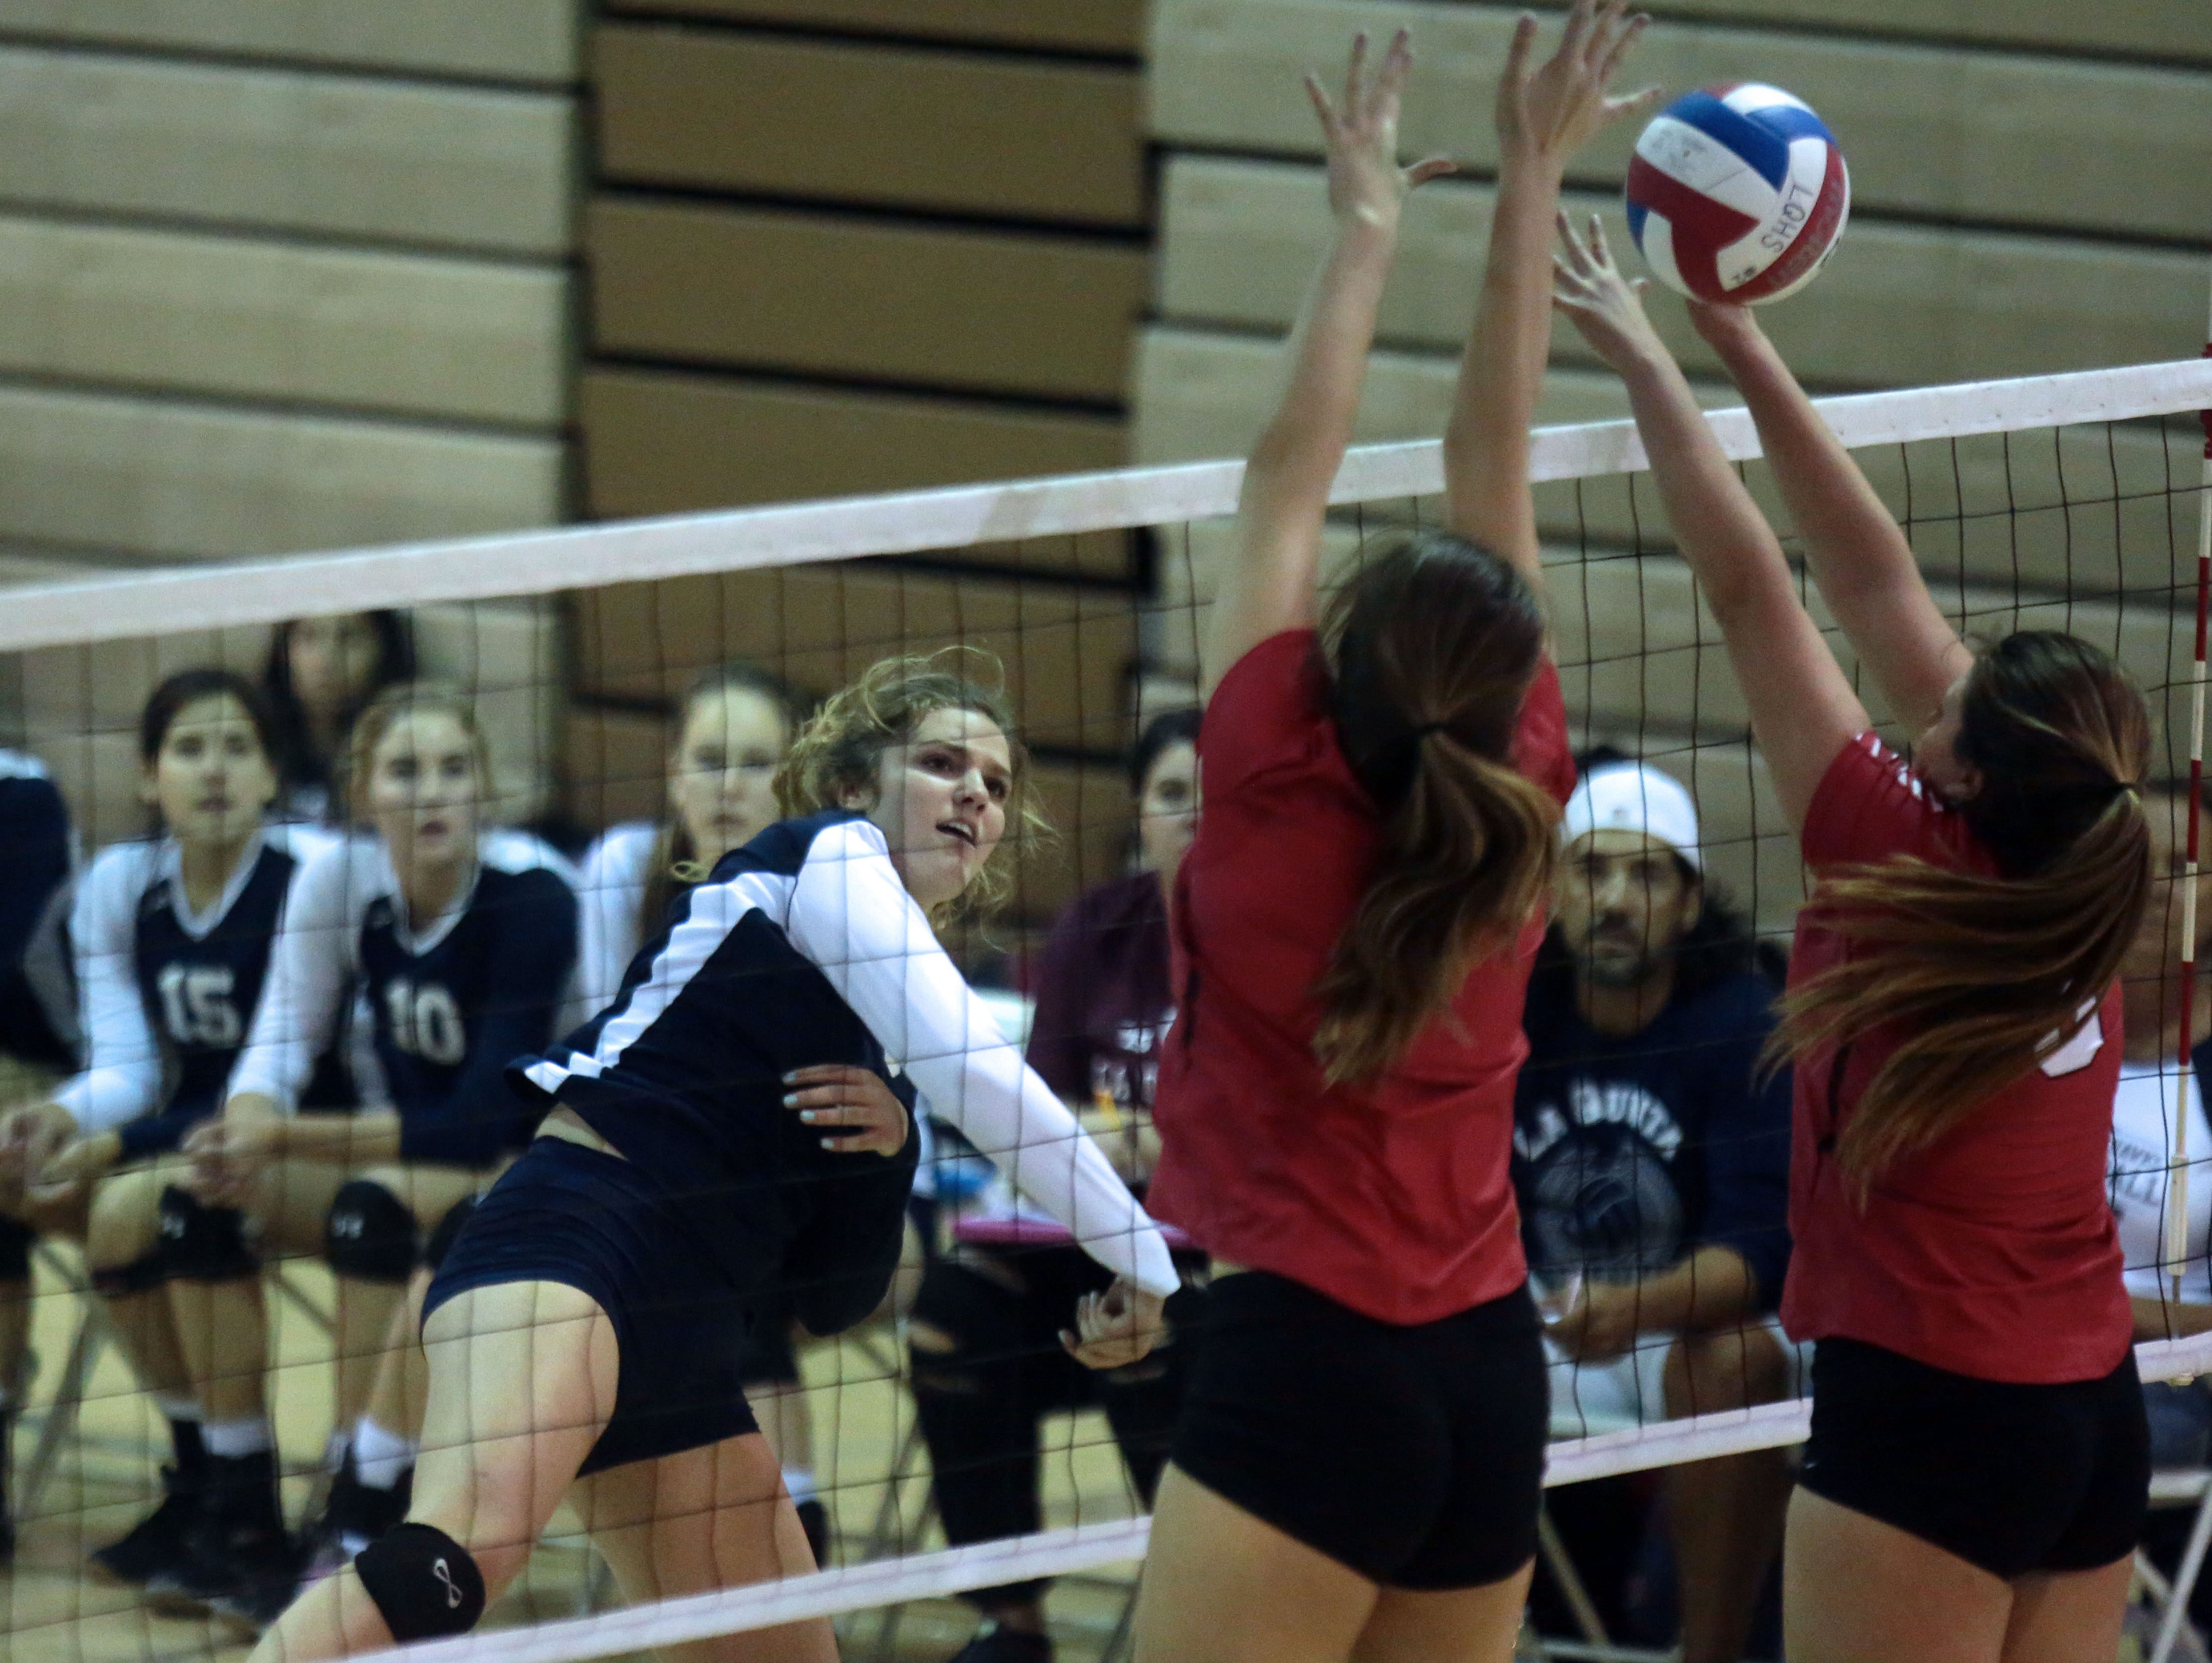 La Quinta's Jolie Samuelson spikes the ball against Palm Springs on Thursday in La Quinta. La Quinta won the match 3 sets to 1.